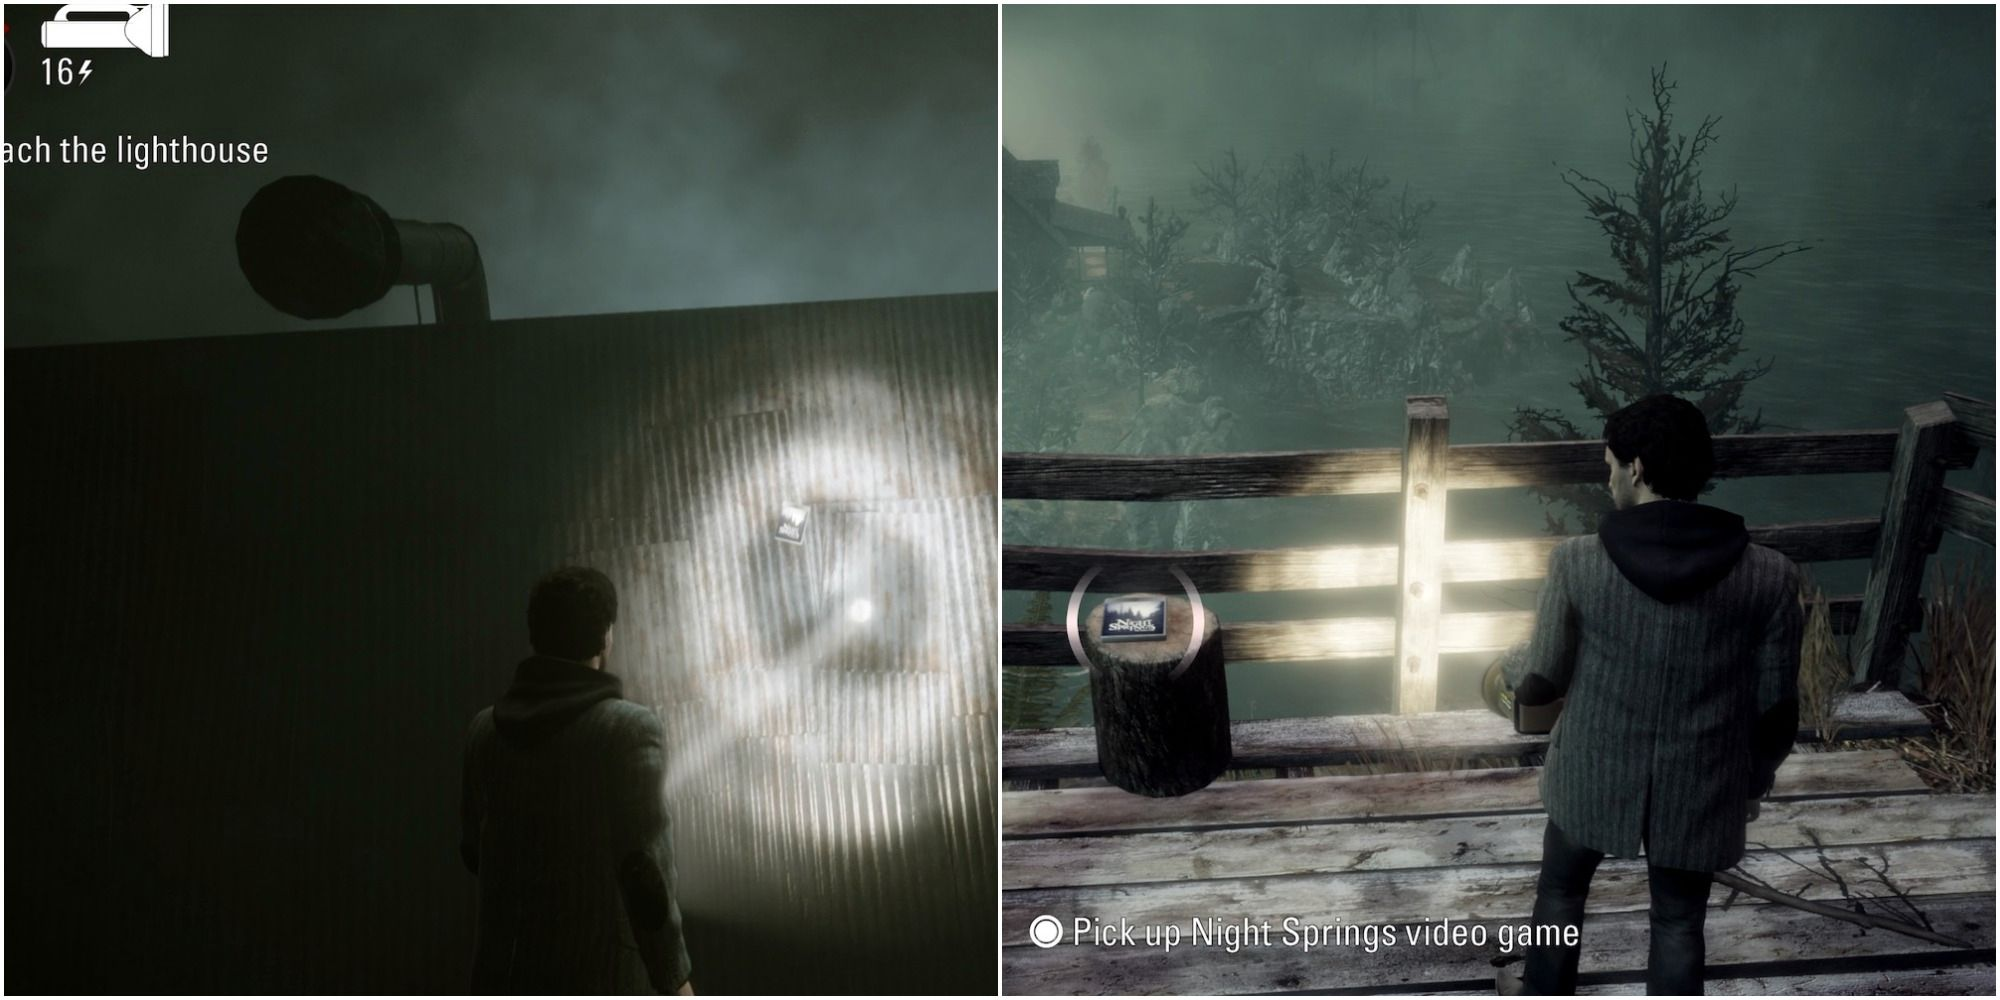 Alan Wake Remastered: All Night Springs Game Locations